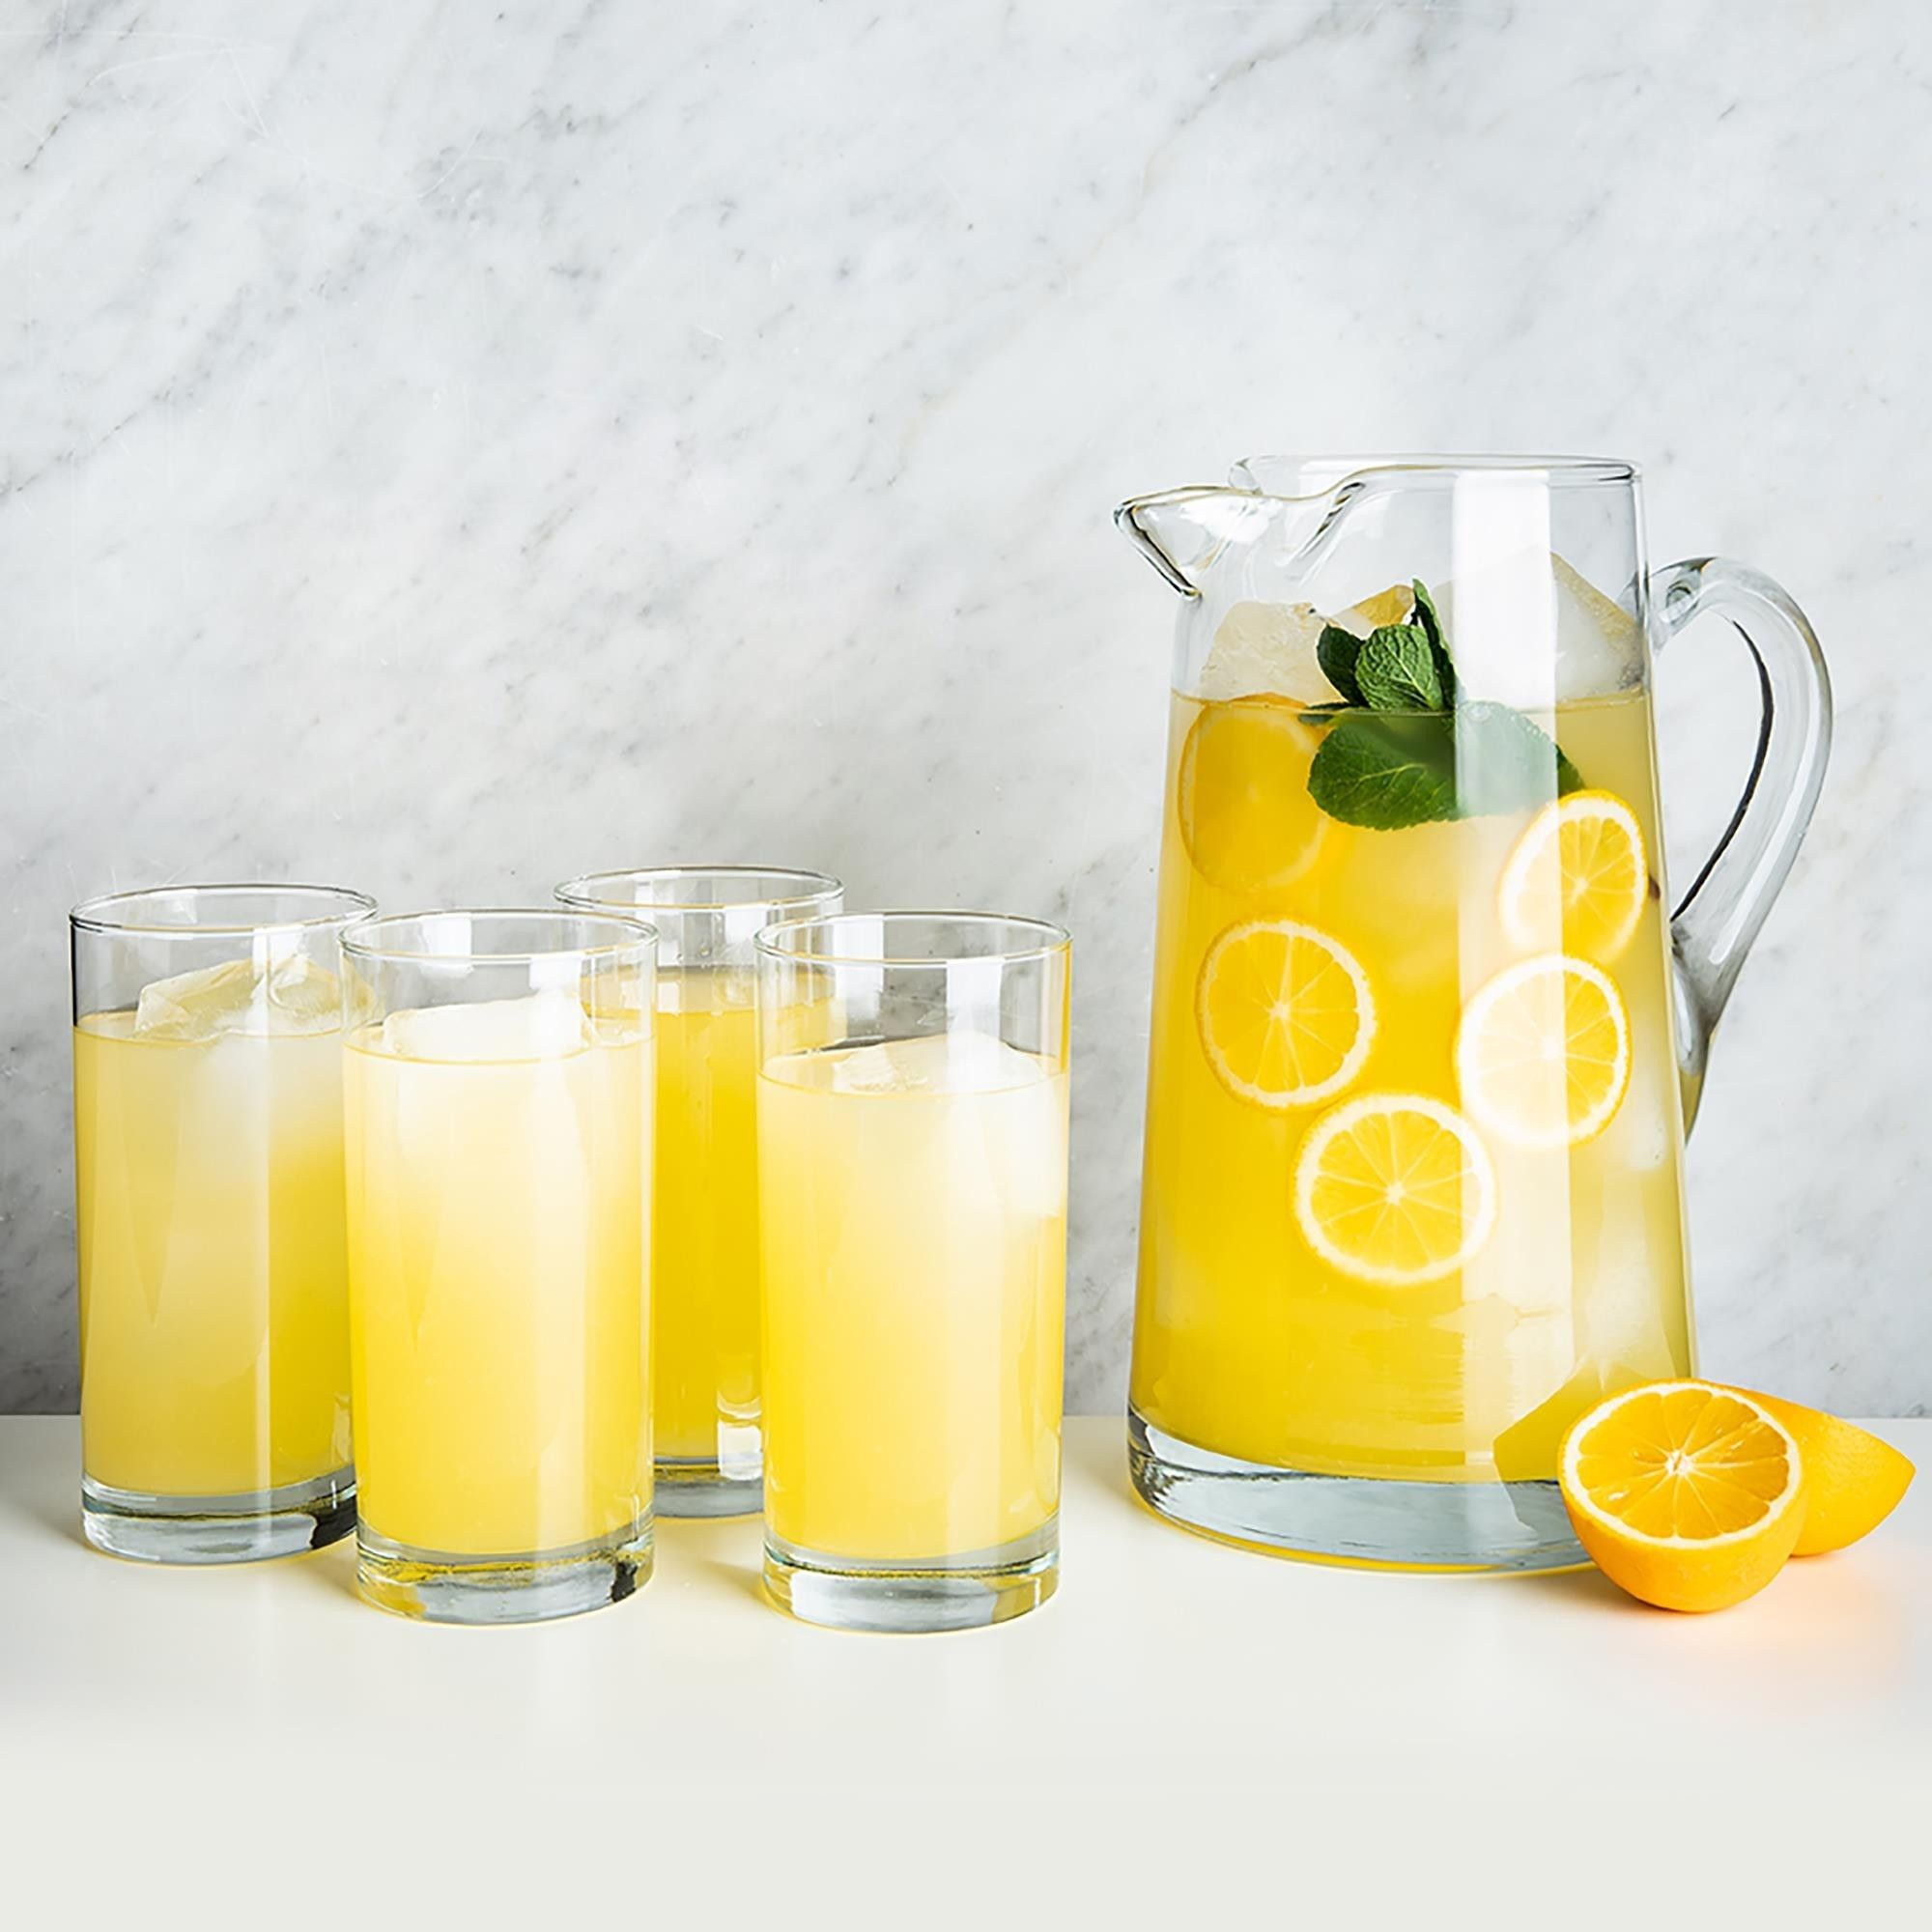 Libbey Lemonade Glass Pitcher With Glasses